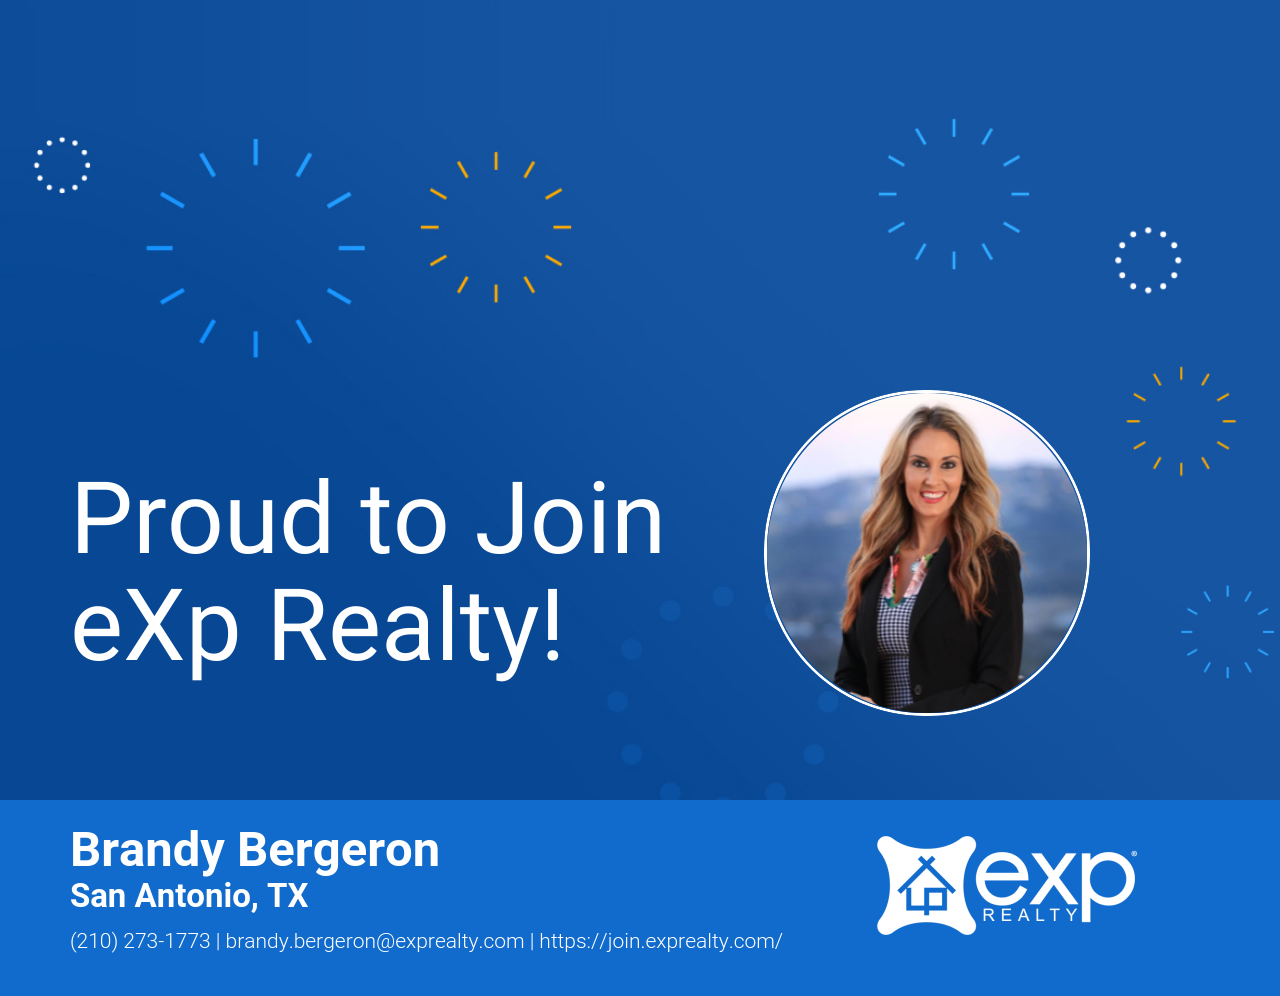 Brandy Bergeron Joined eXp Realty!